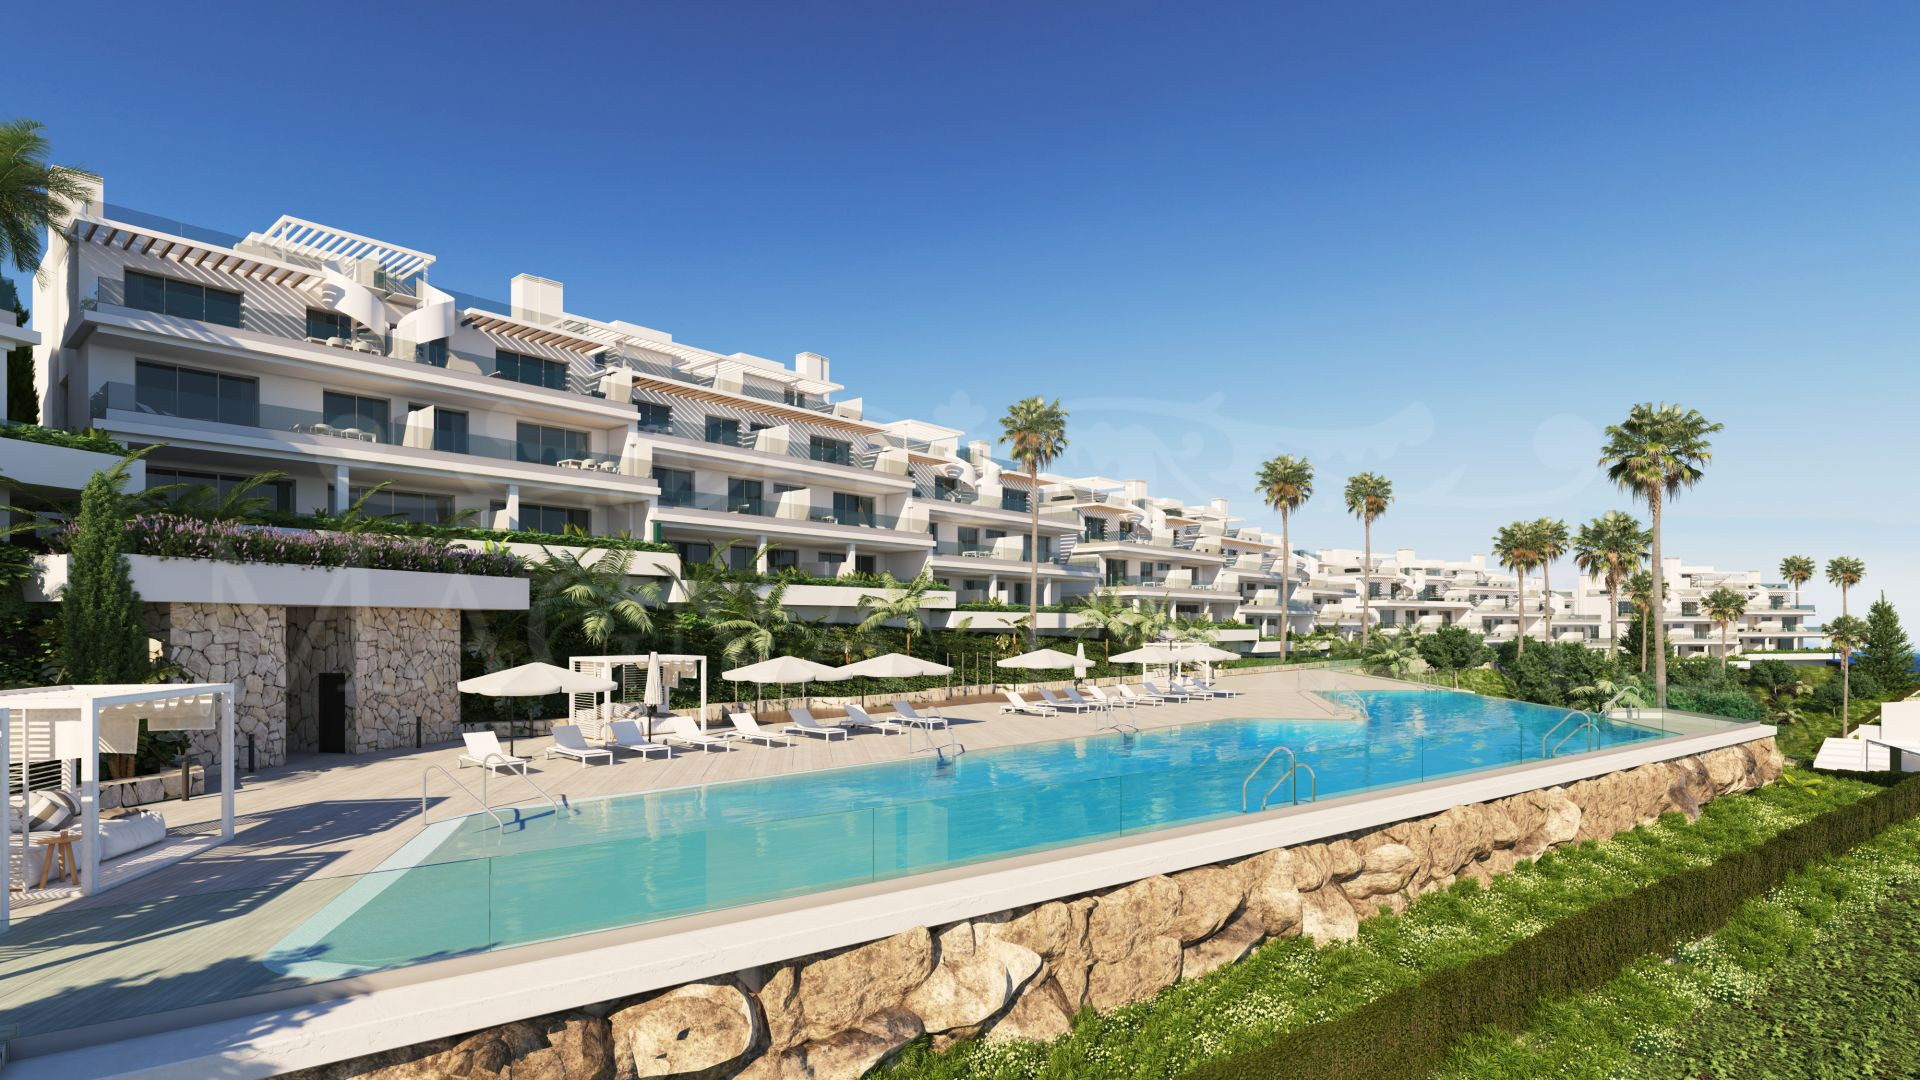 Newly built apartments in Cancelada, New Golden Mile